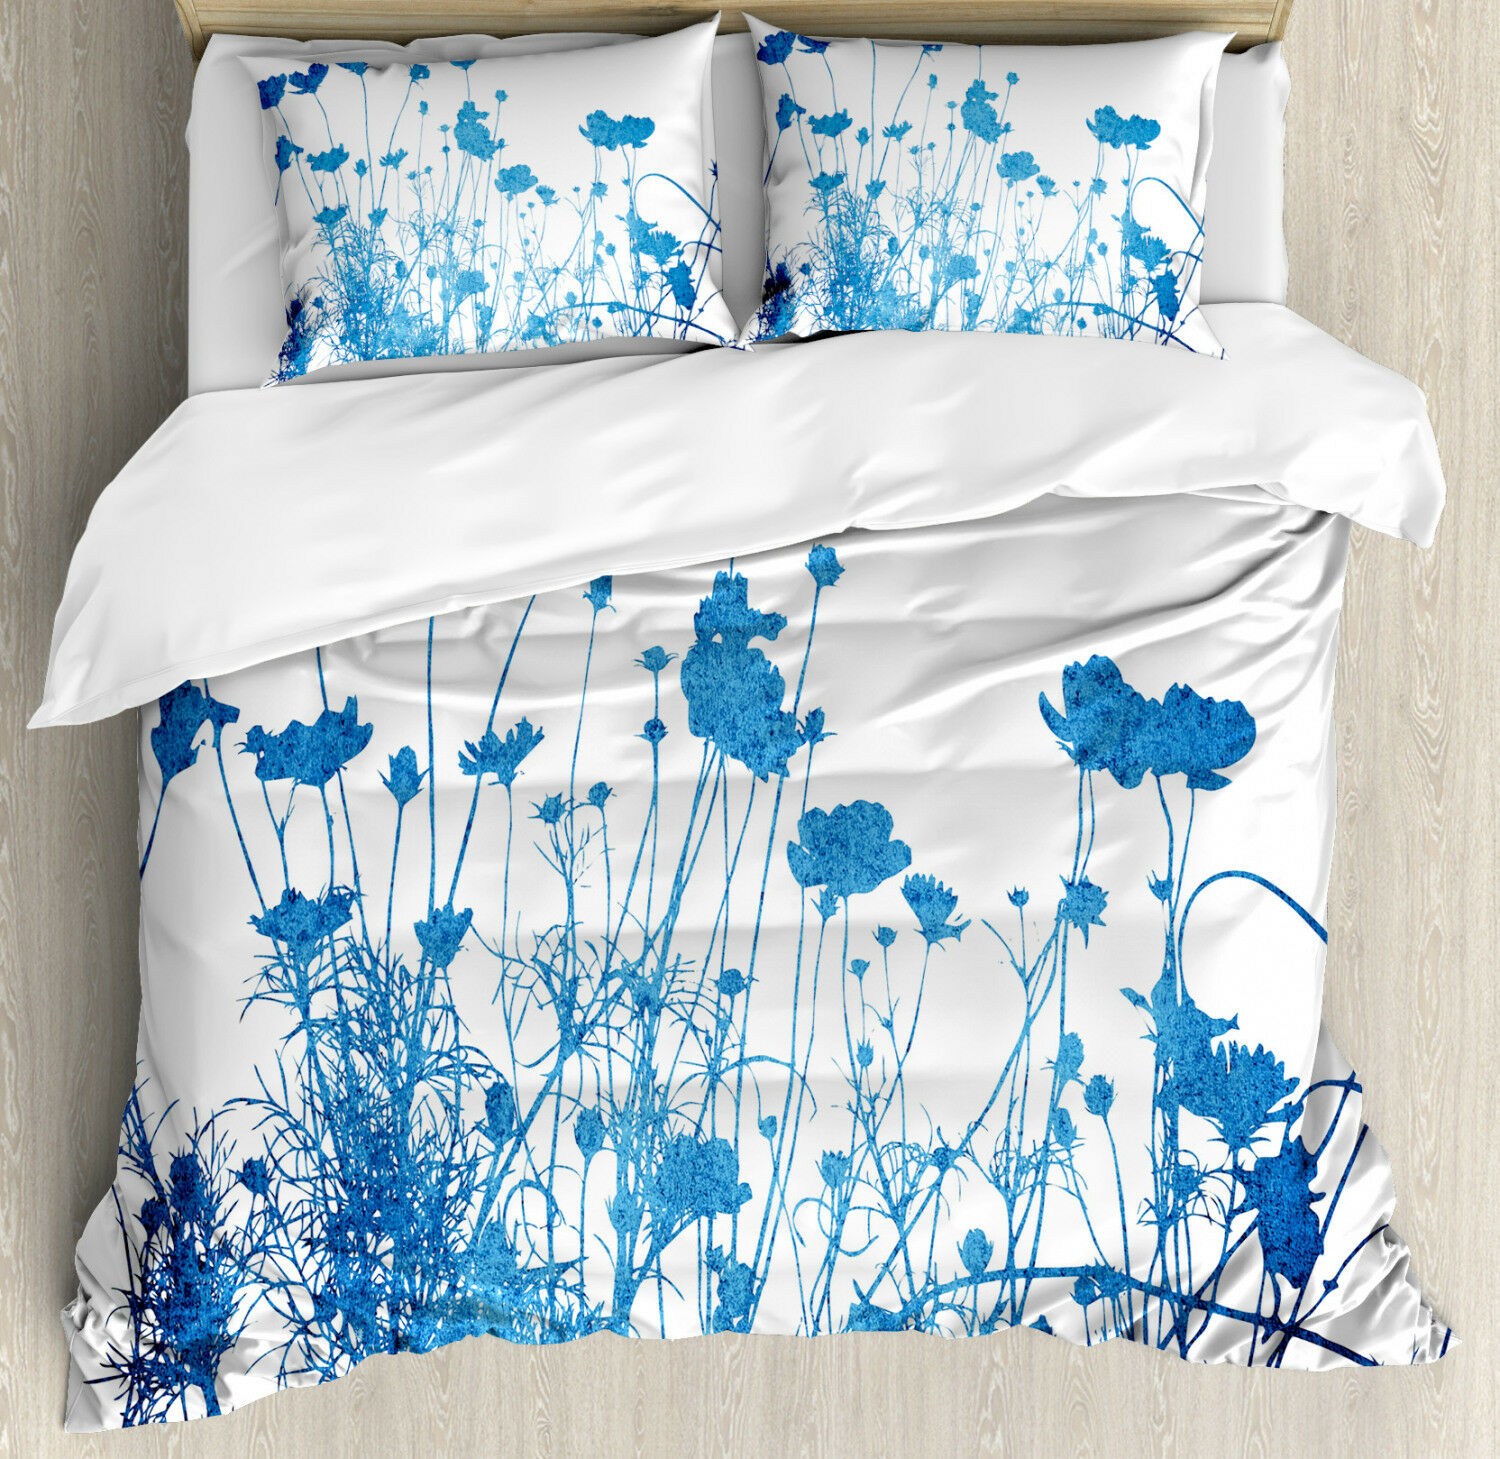 blu bianca Duvet Cover Set with Pillow Shams Wildflowers Blooms Print